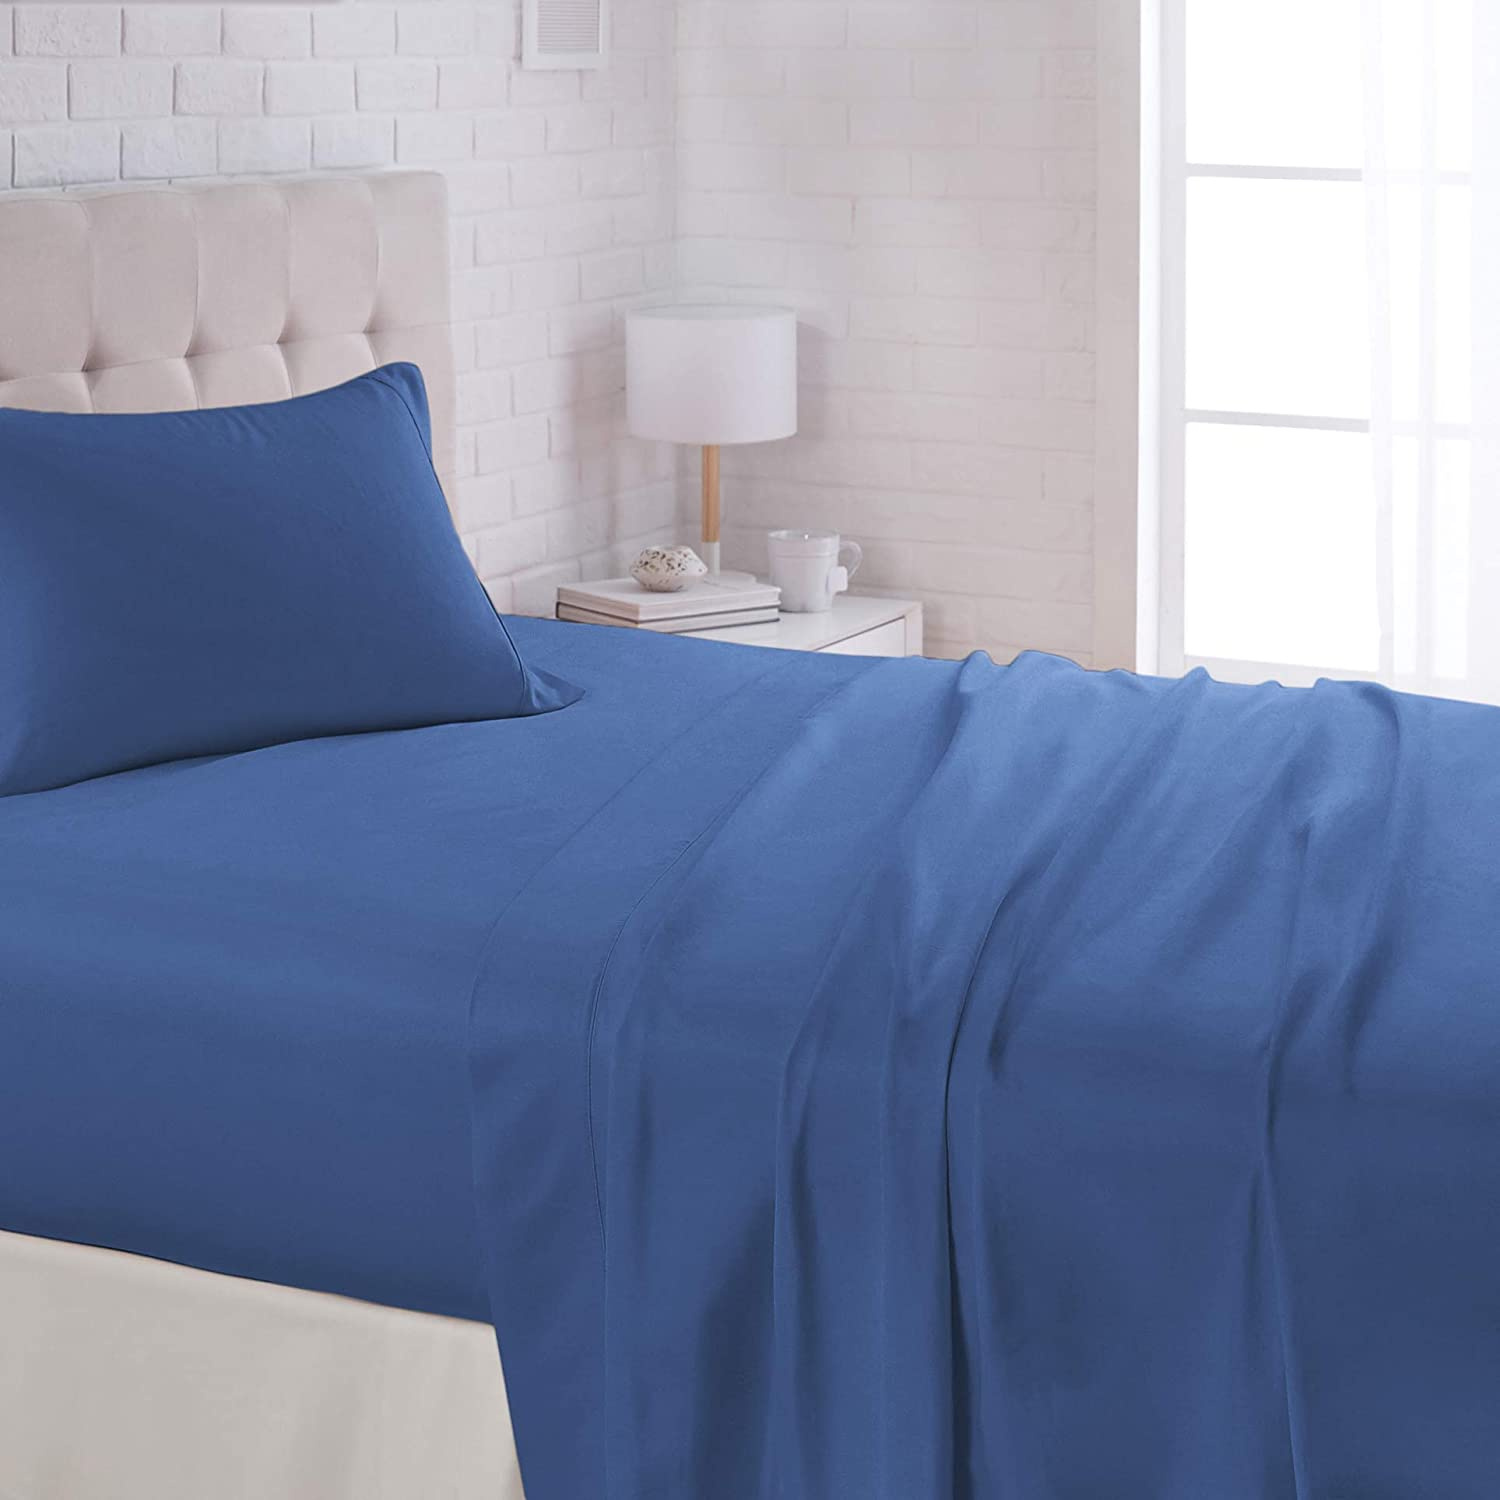 "AmazonBasics Lightweight Super Soft Easy Care Microfiber Sheet Set with 16"" Deep Pockets - Full, Dutch Blue"